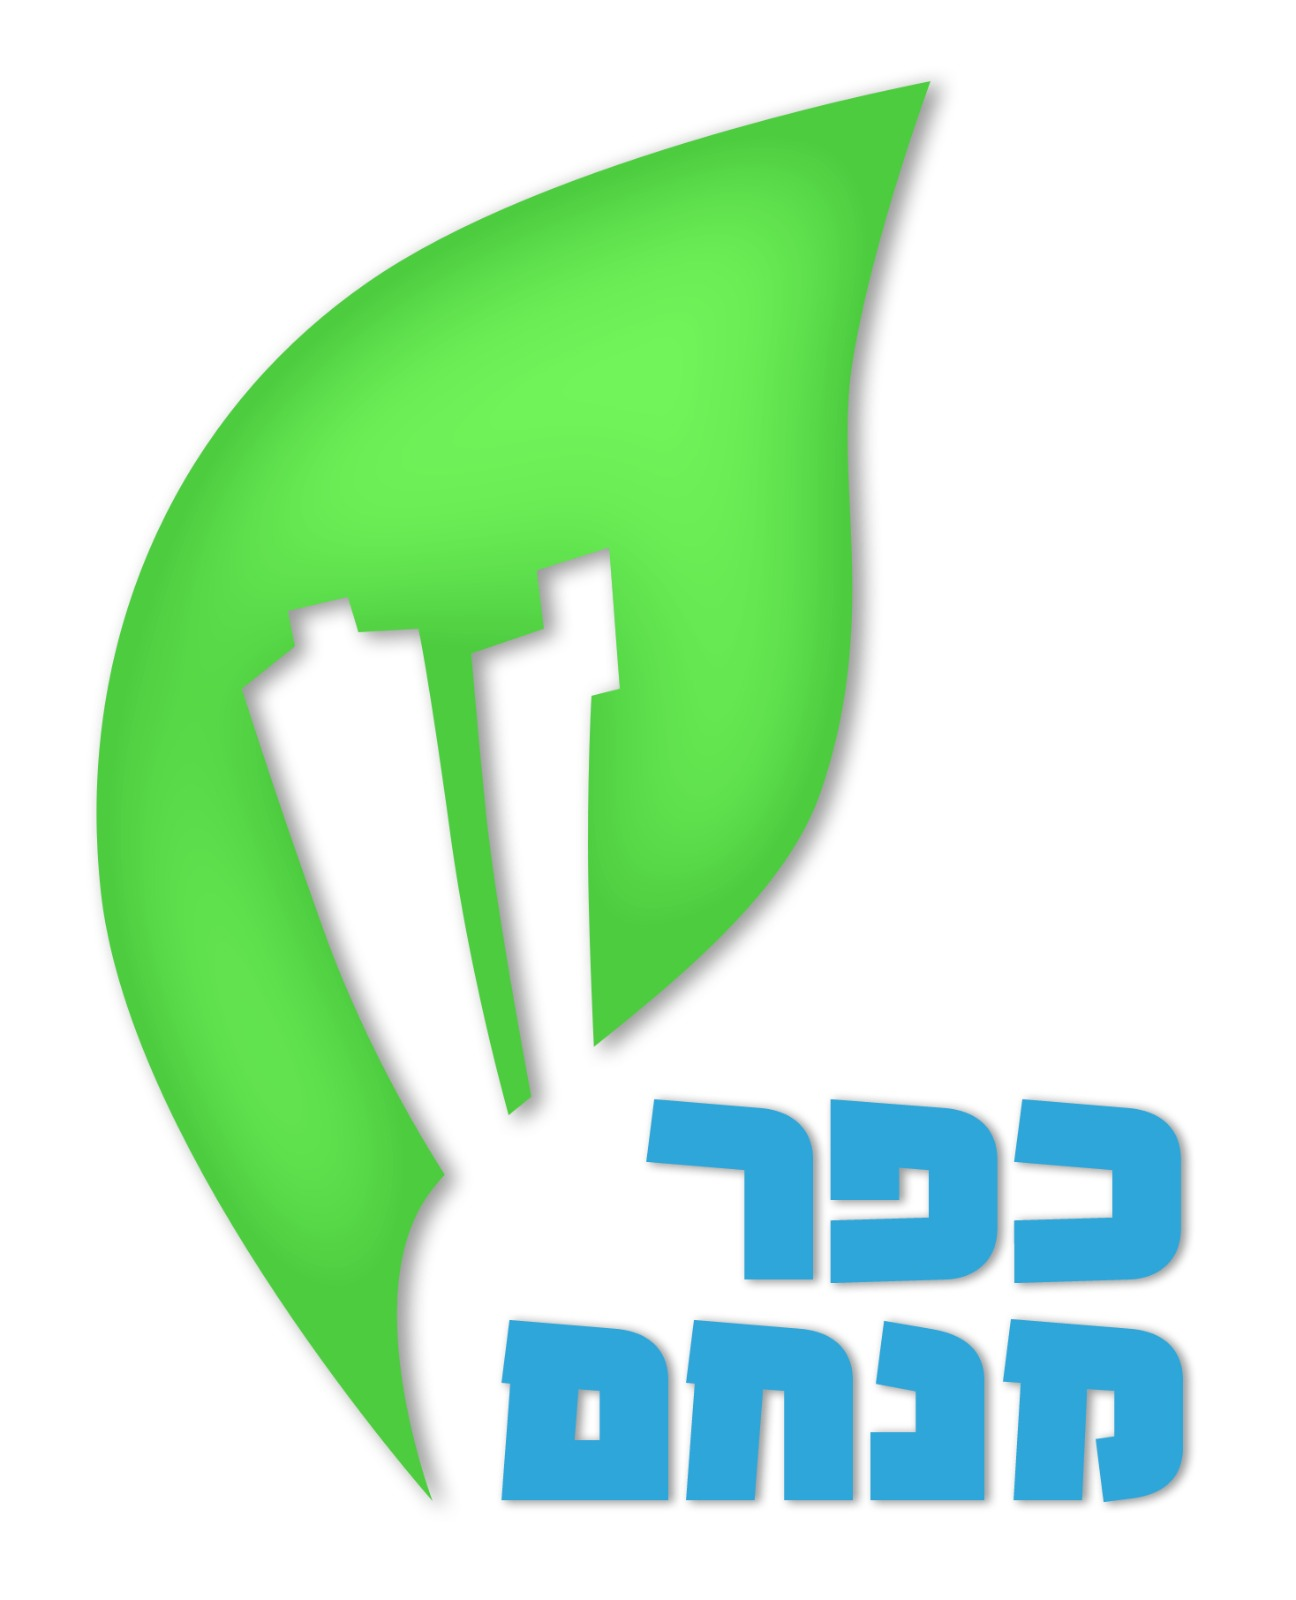 yizkur_files_broide_avraham001.jpg